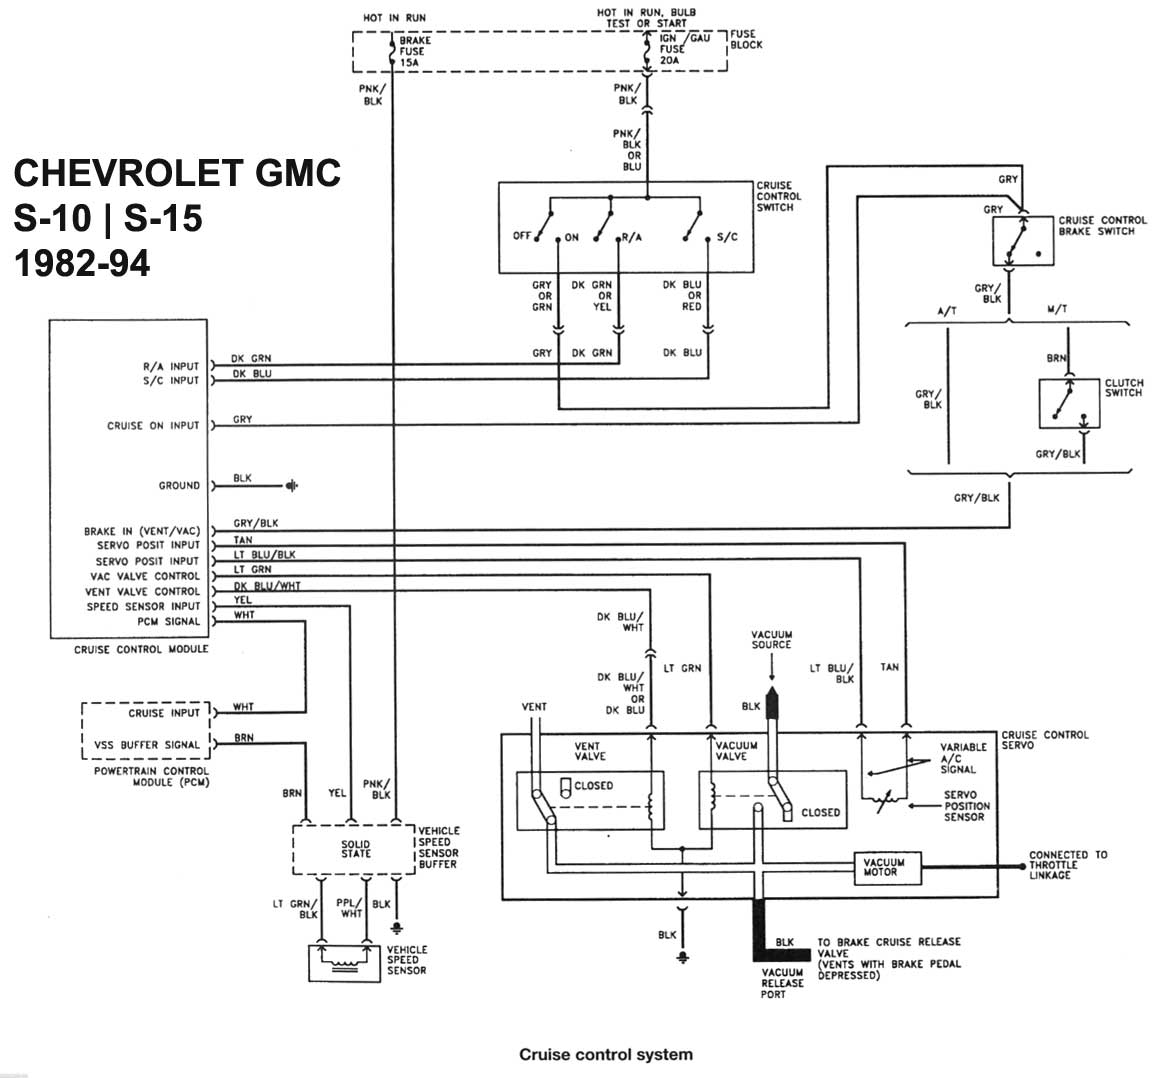 1989 chevy truck 1500 wiring diagram 1989 chevrolet suburban wiring diagram wiring diagram data  1989 chevrolet suburban wiring diagram